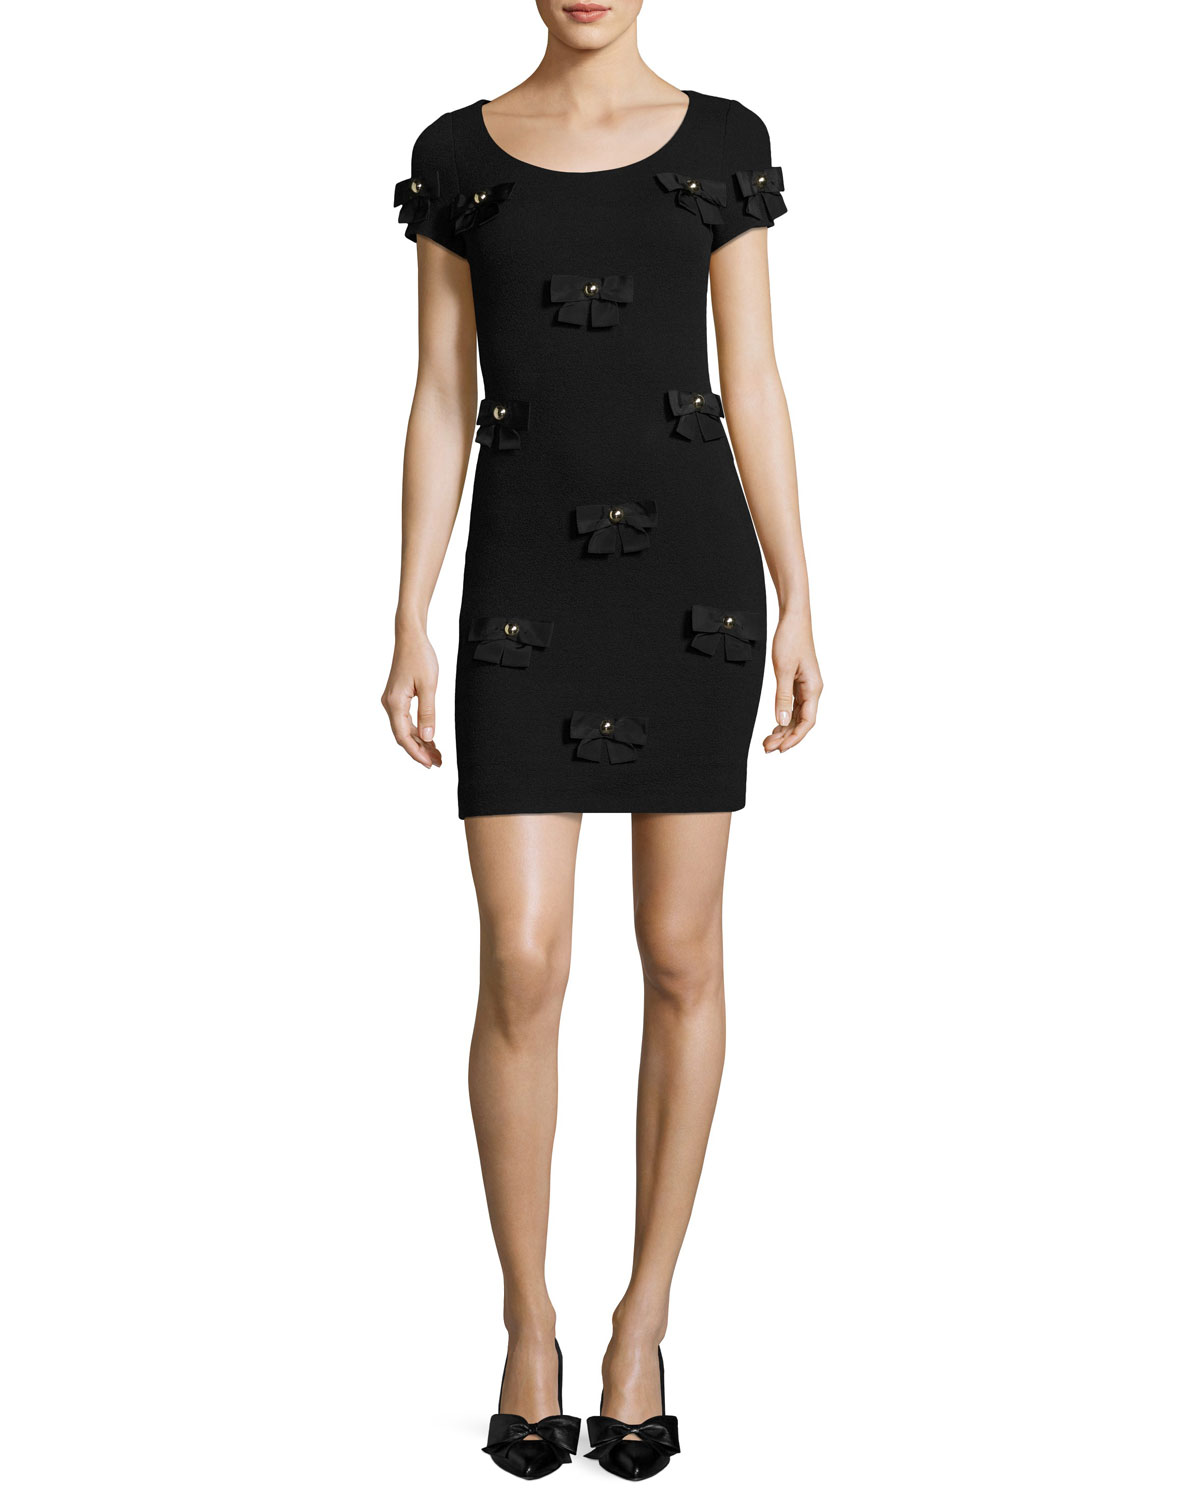 Short-Sleeve Crepe Sheath Dress w/ Bows, Black